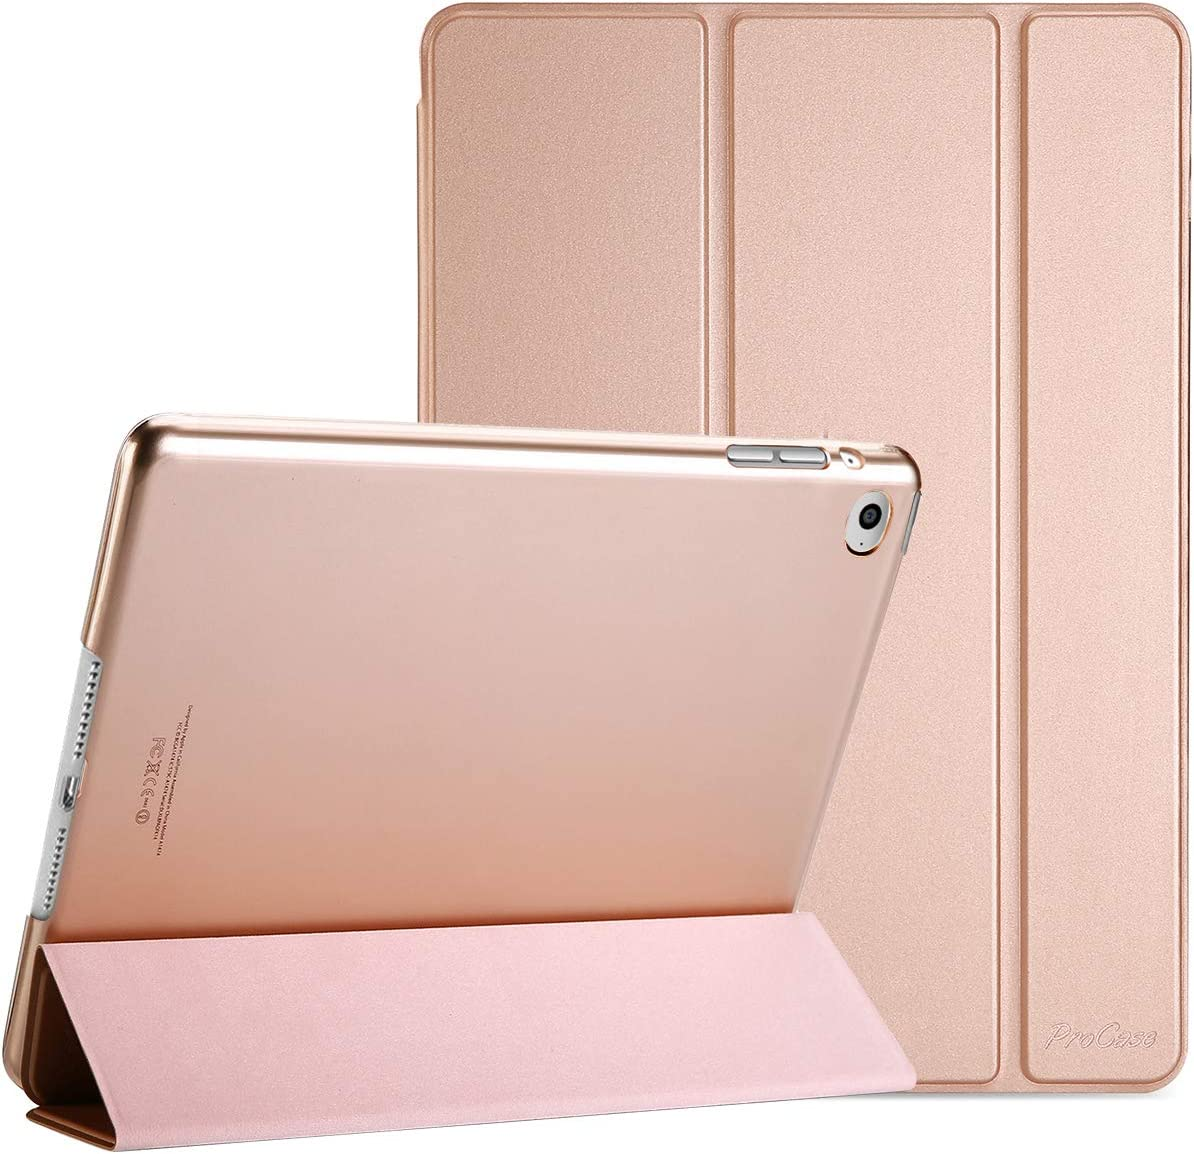 ProCase Smart Case for iPad Air 2 (2014 Release), Ultra Slim Lightweight Stand Protective Case Shell with Translucent Frosted Back Cover for Apple iPad Air 2 (A1566 A1567) -Rosegold